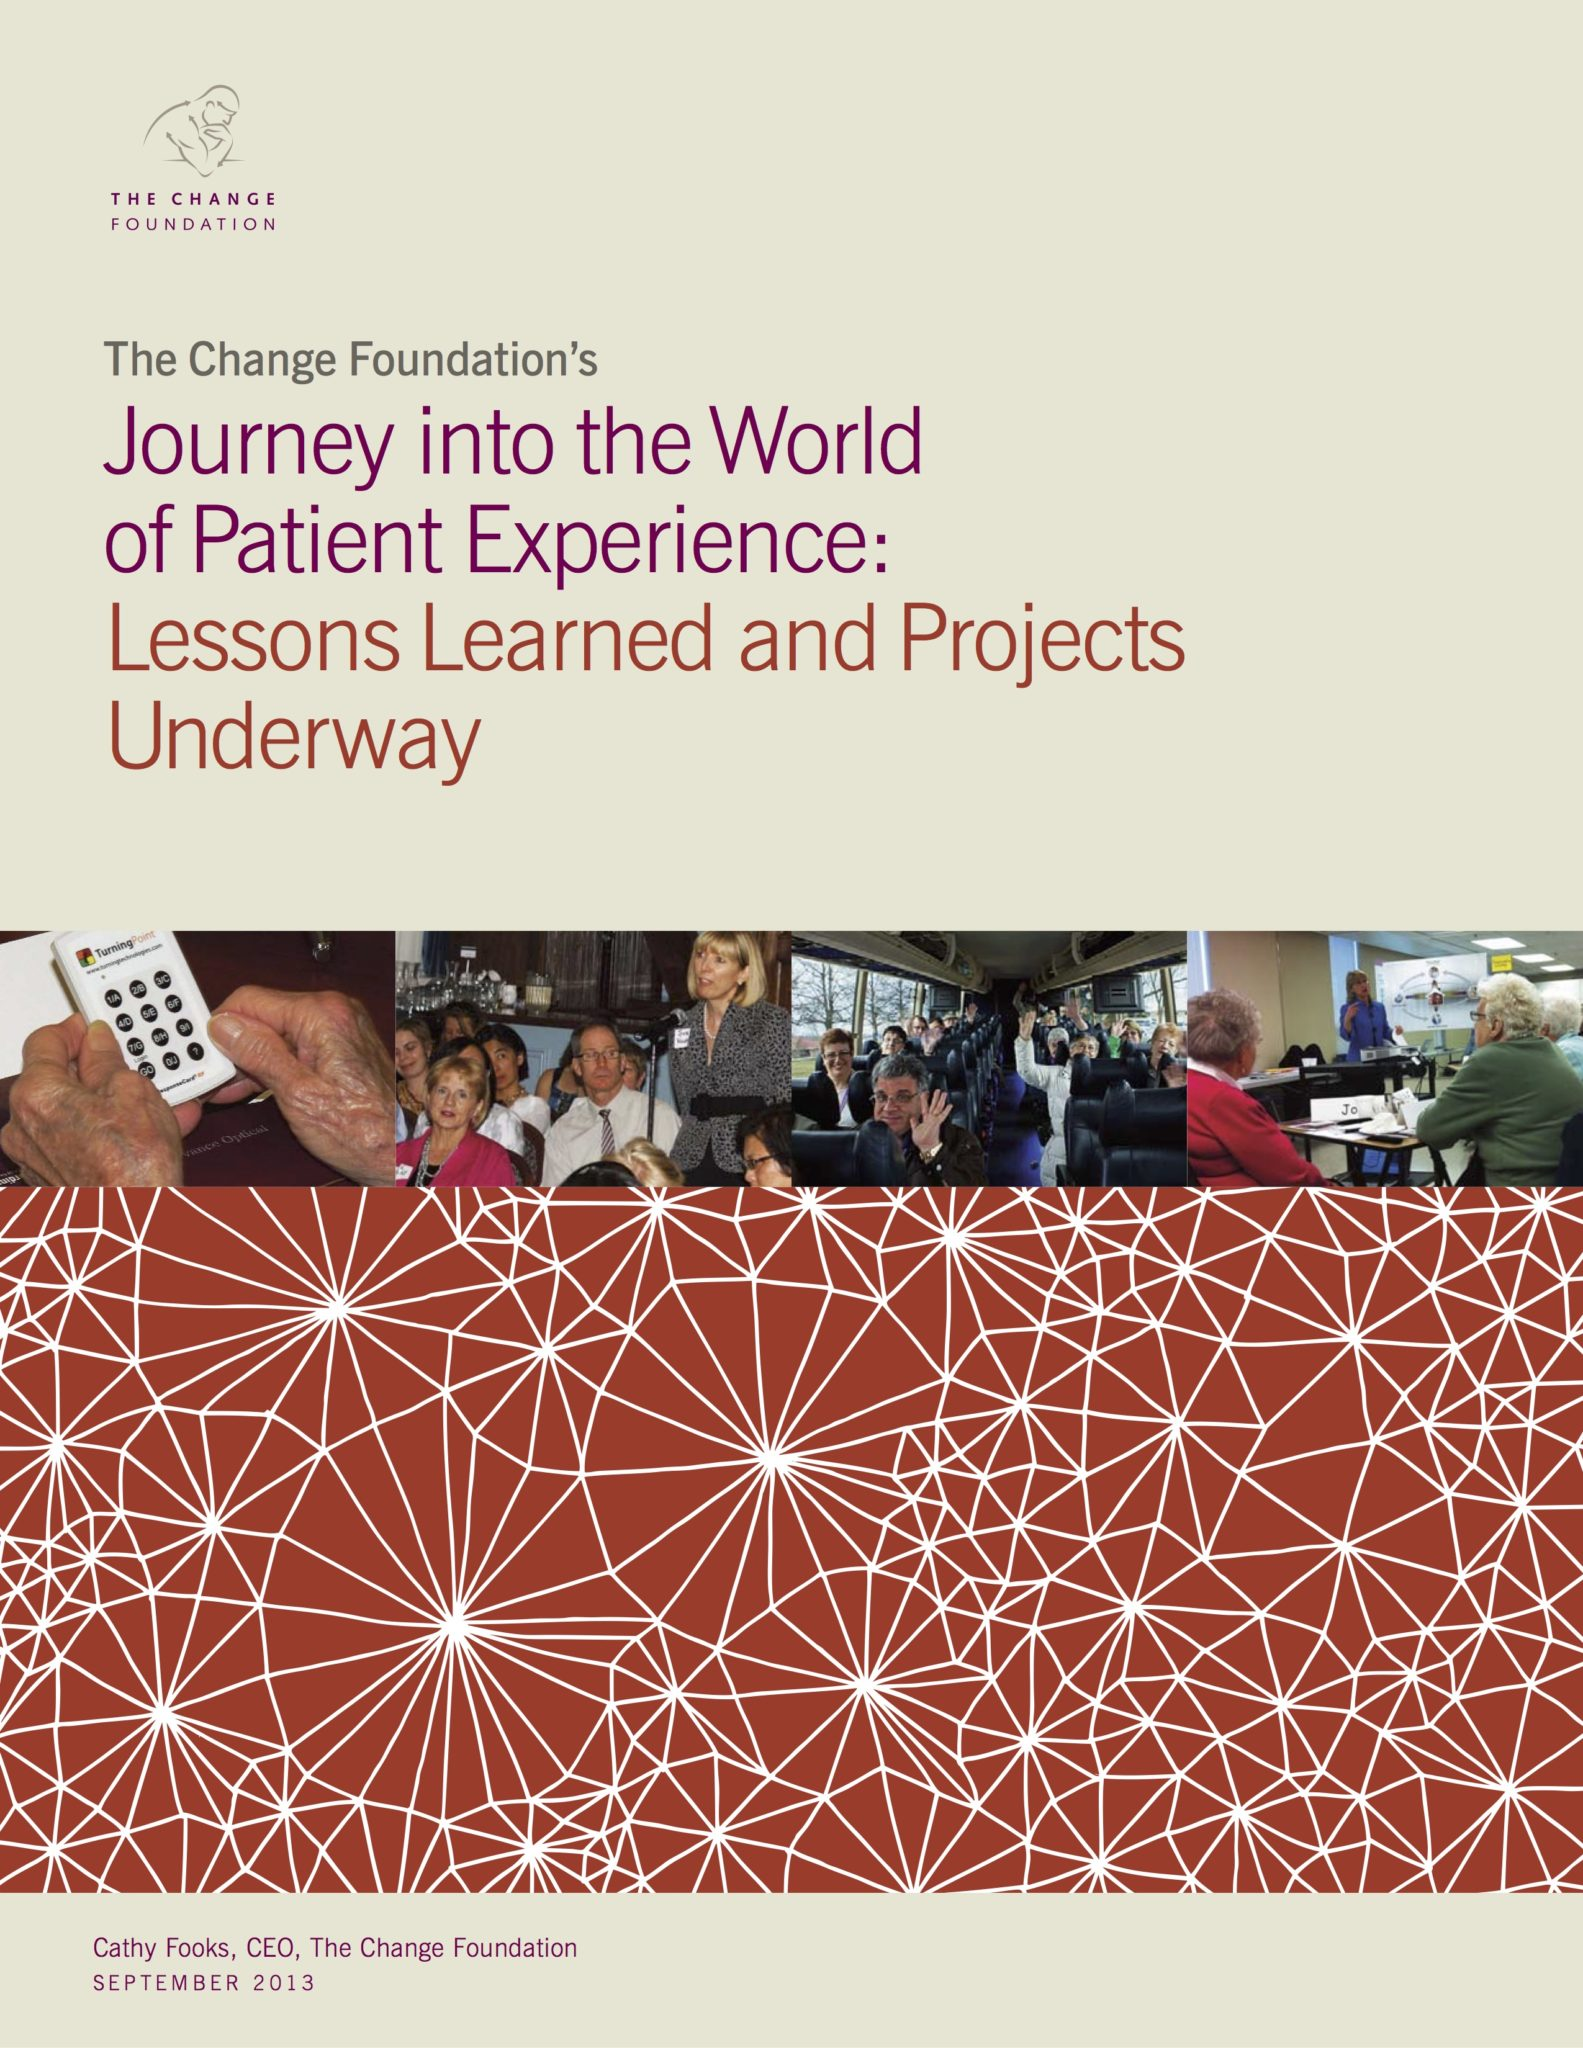 The Change Foundation's Journey into the World of Patient Experience